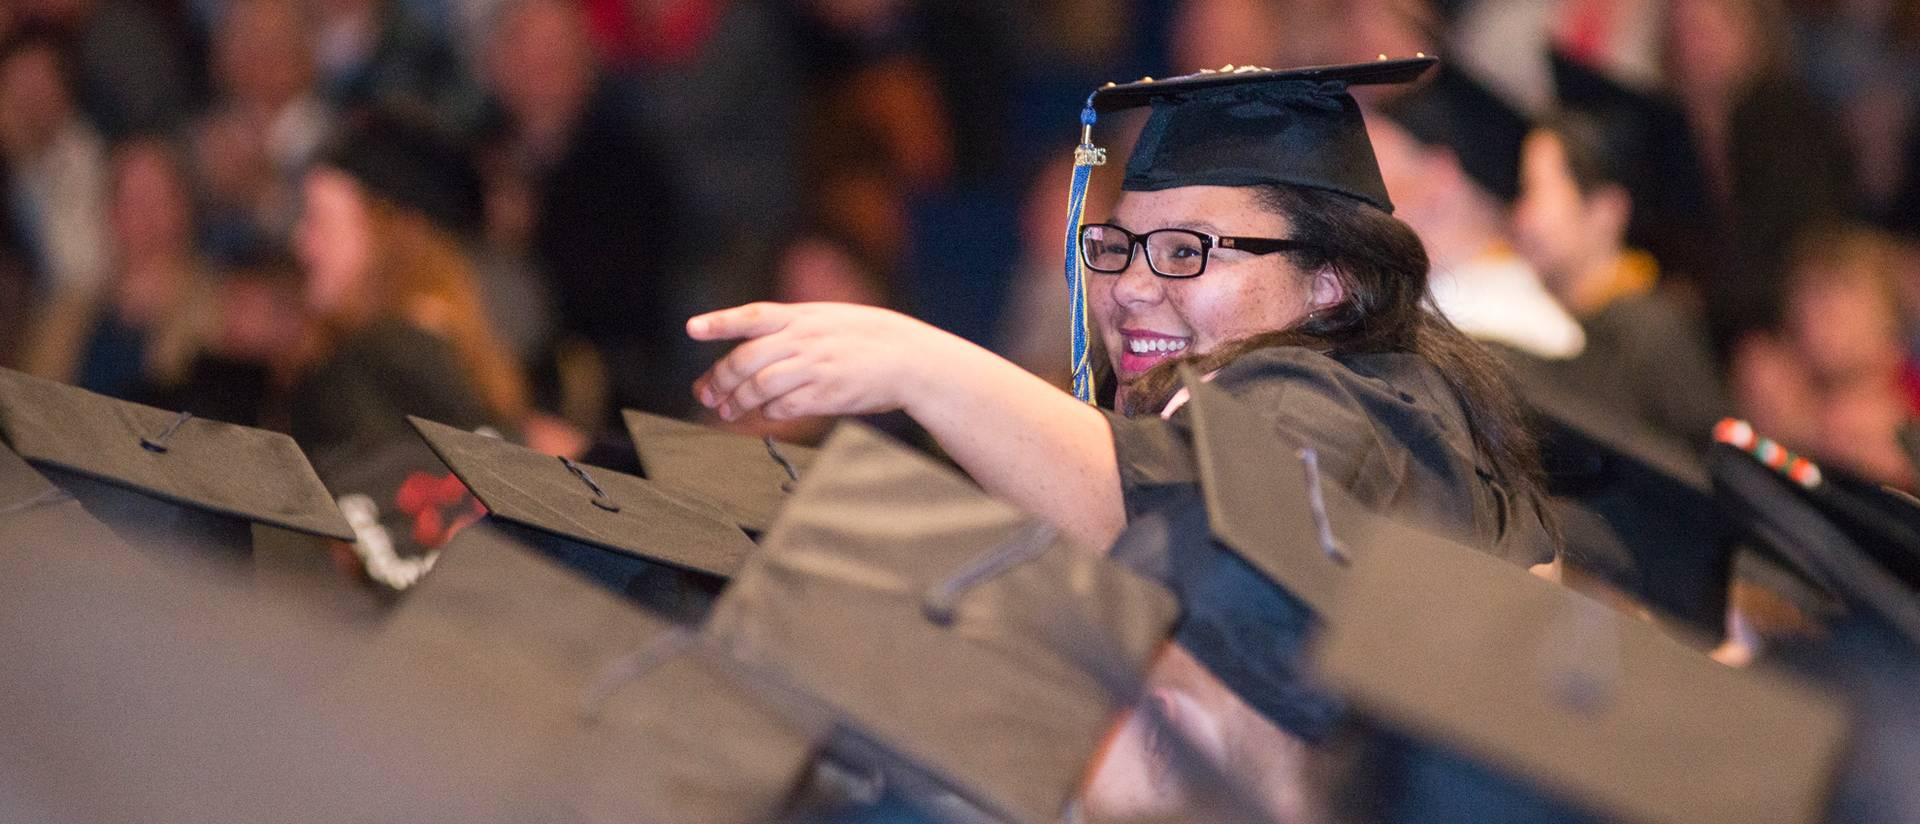 UWEC graduate at December 2015 Commencement